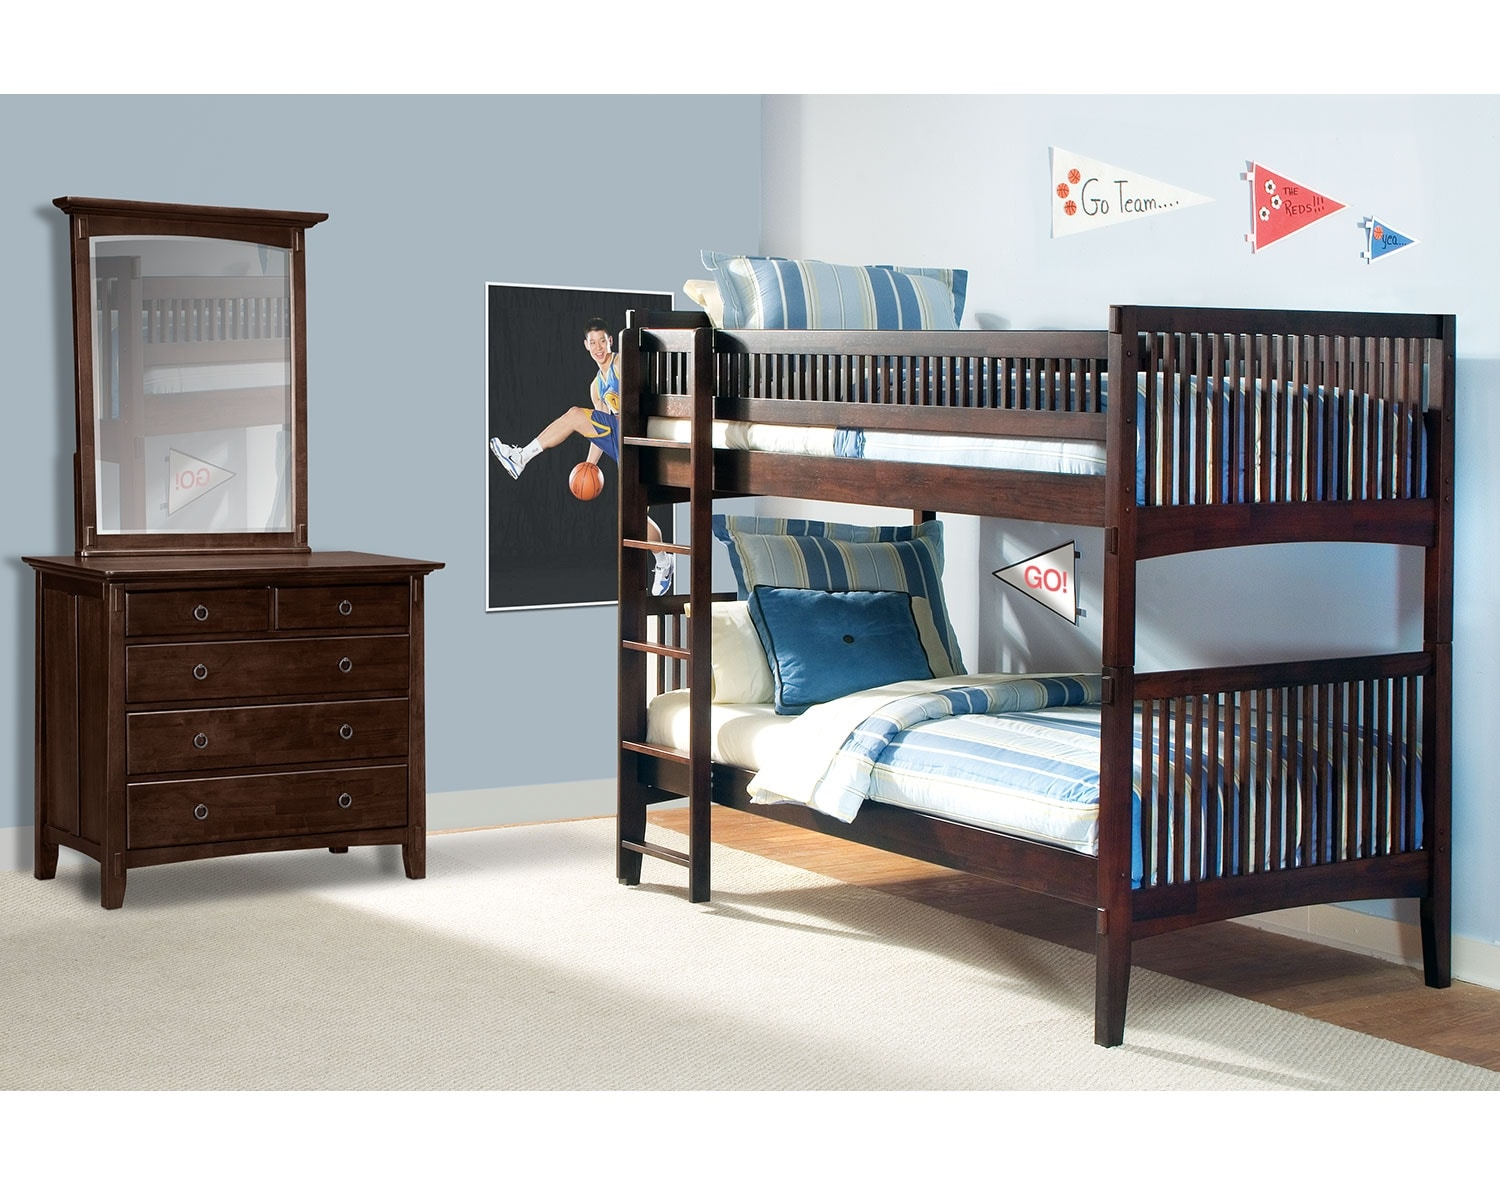 Kids Furniture - The Wentworth III Dark Collection - Twin Bunk Bed